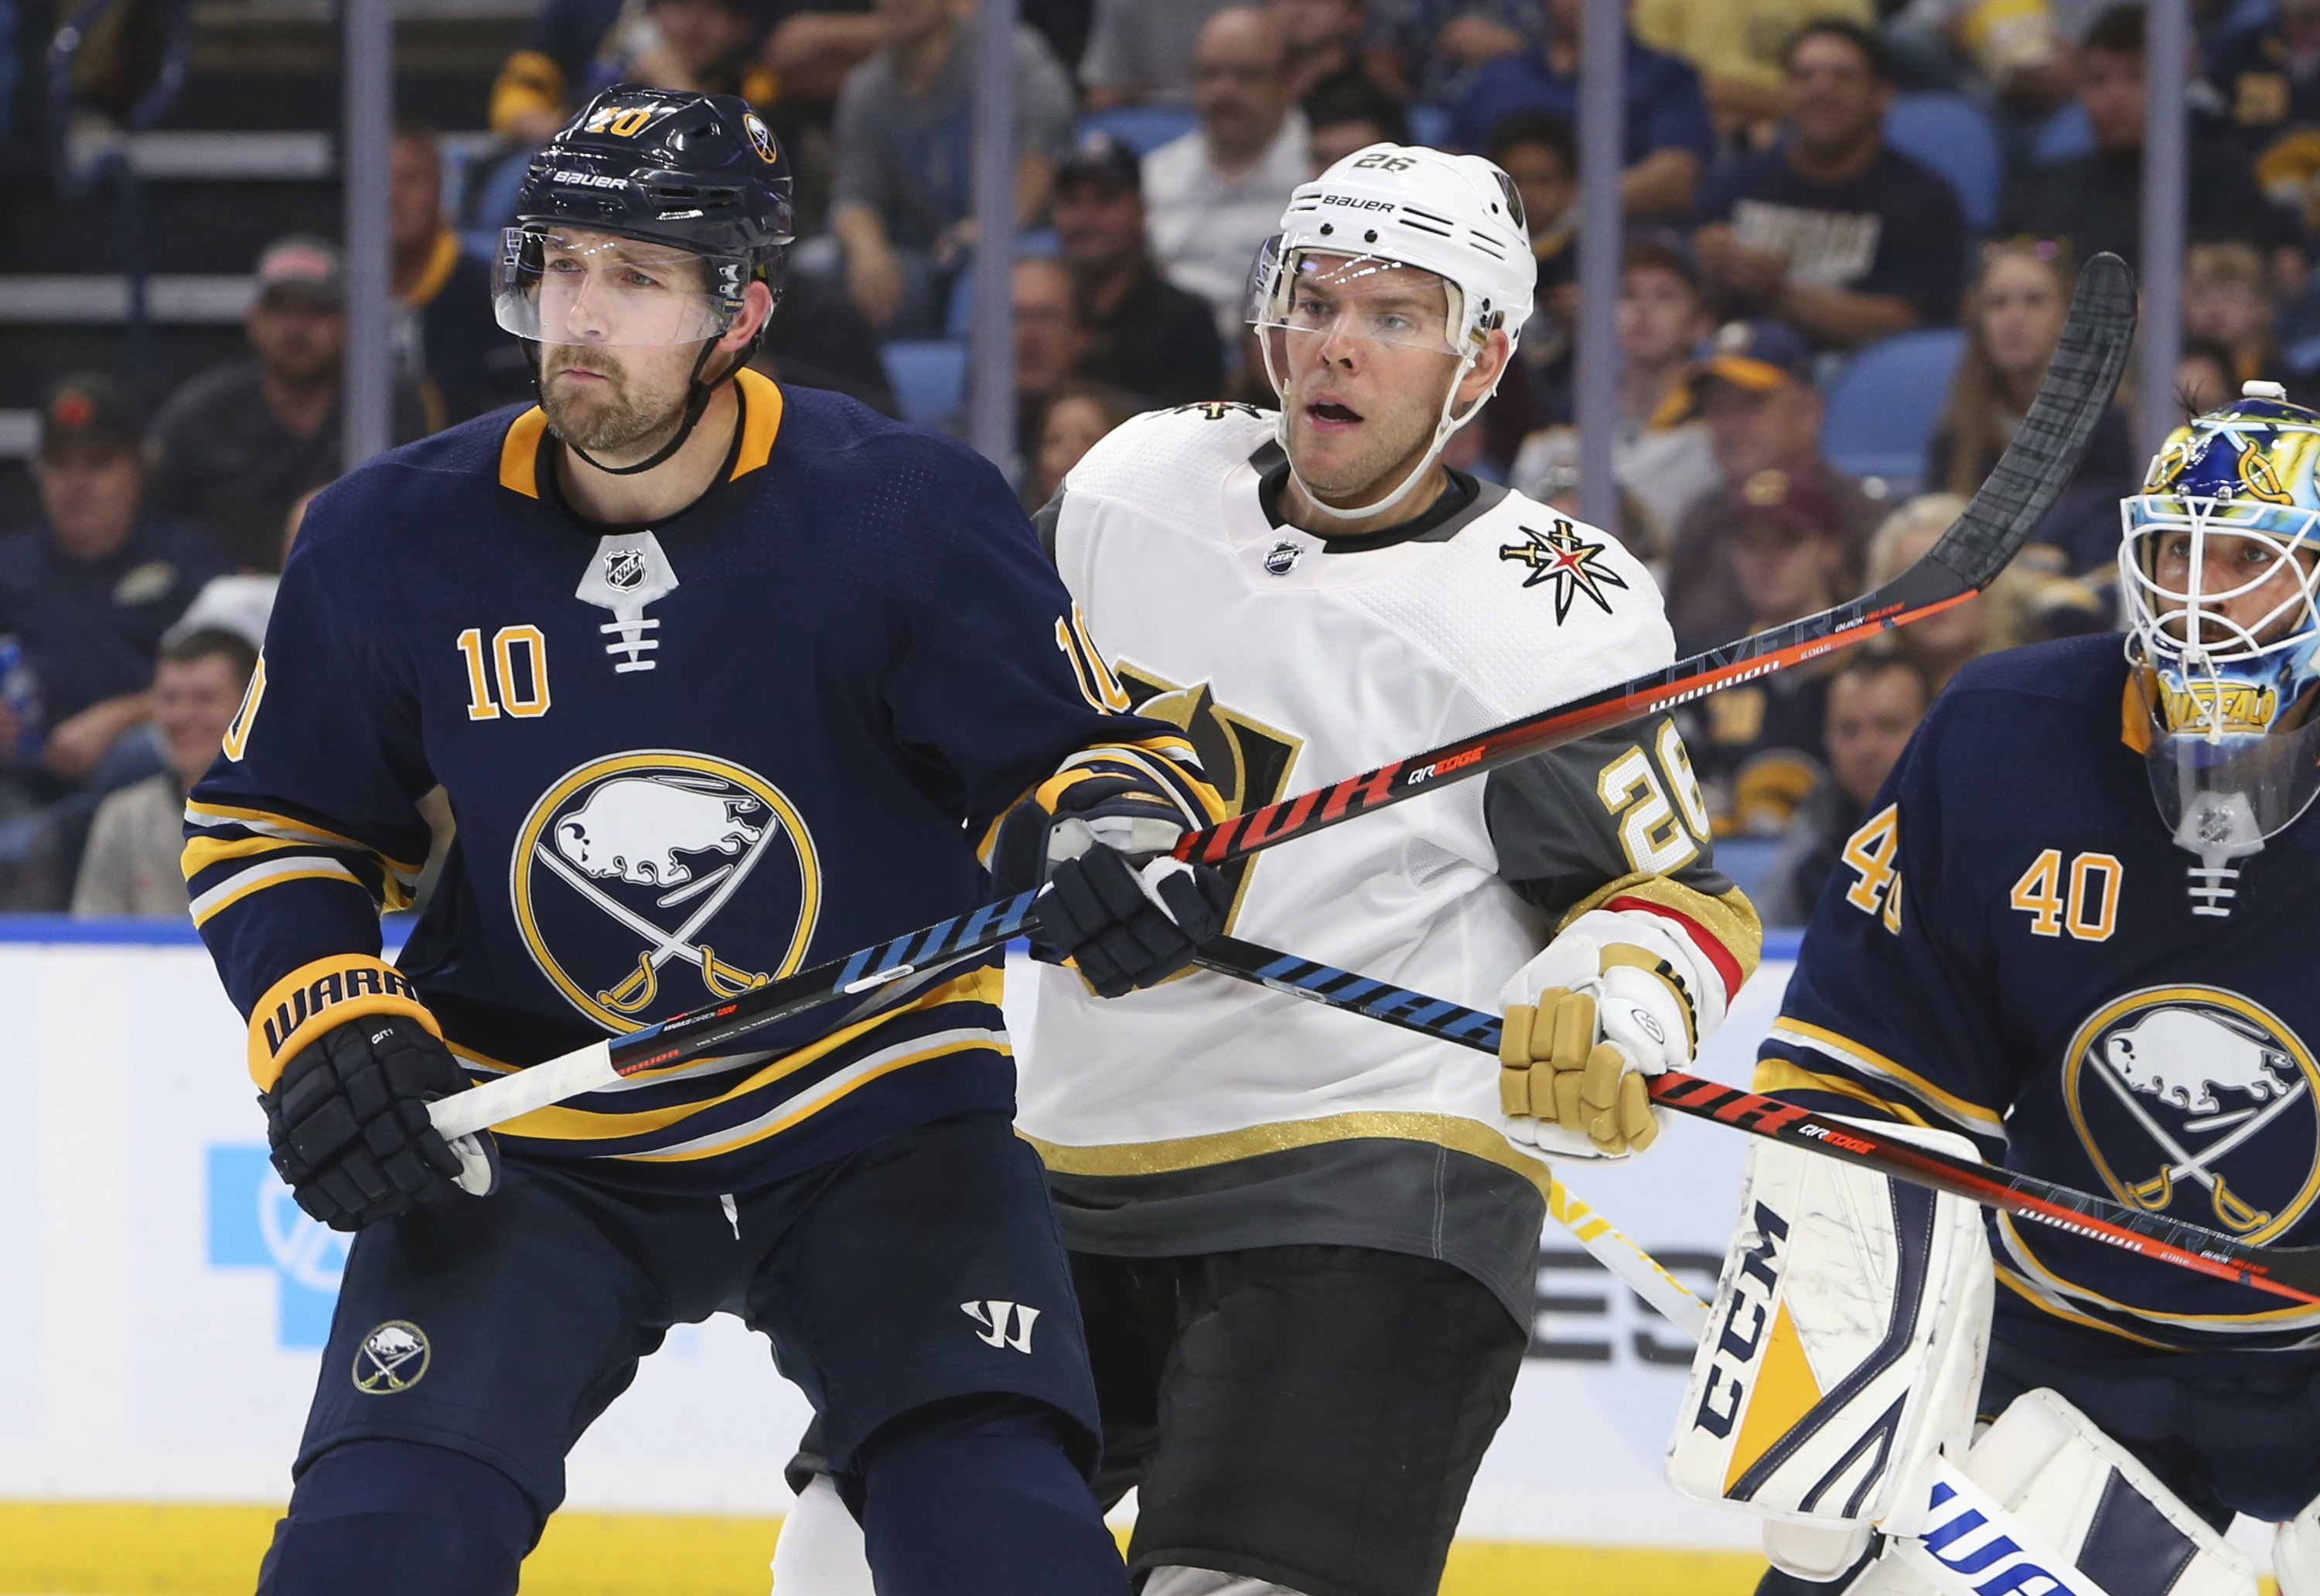 Golden Knights' Stastny out 3 games with lower-body injury